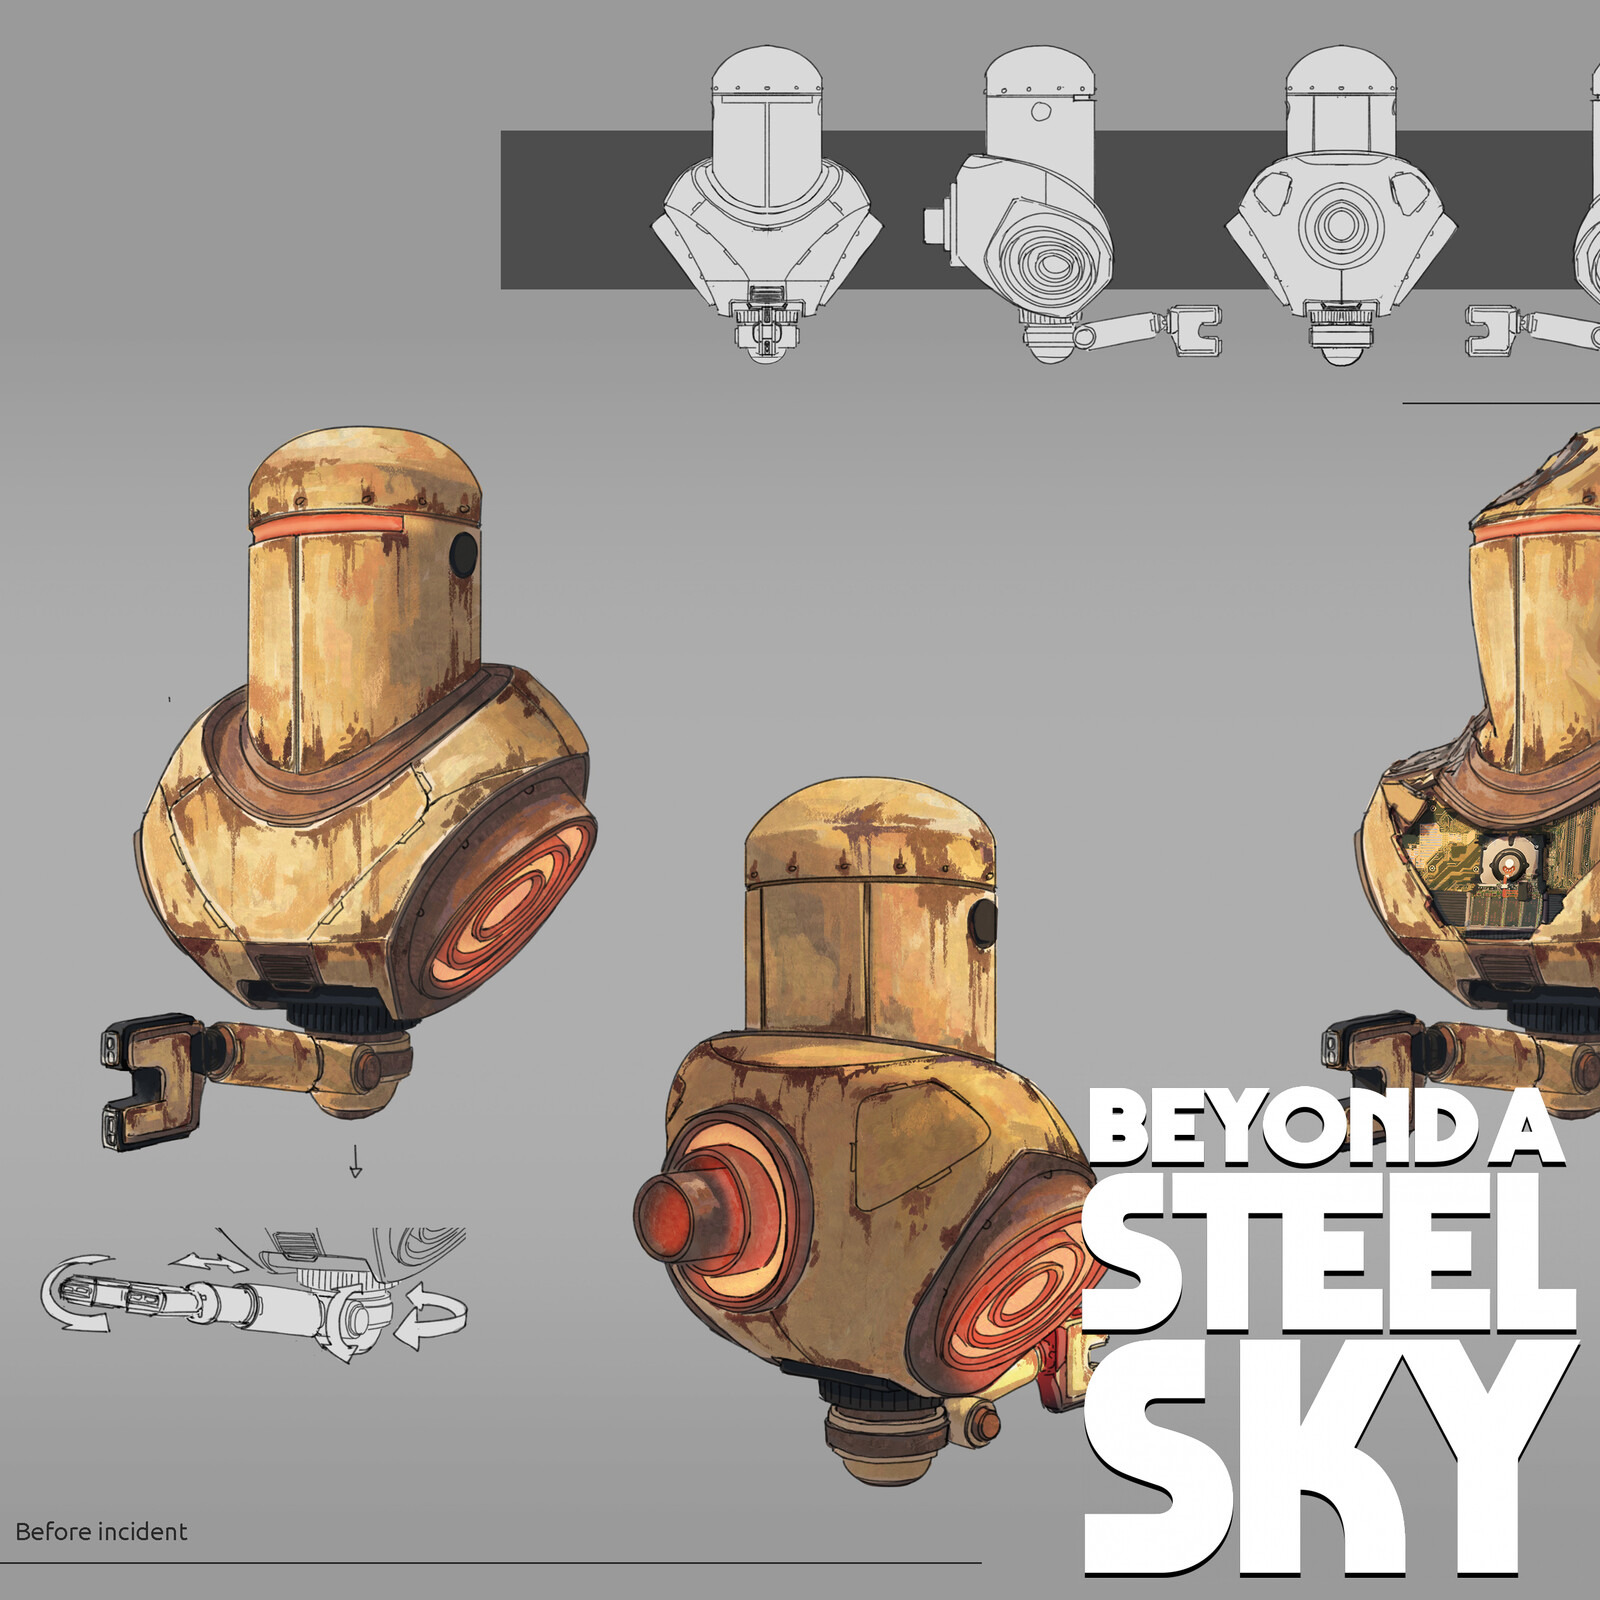 BEYOND A STEEL SKY: Joey Shell Security Droid